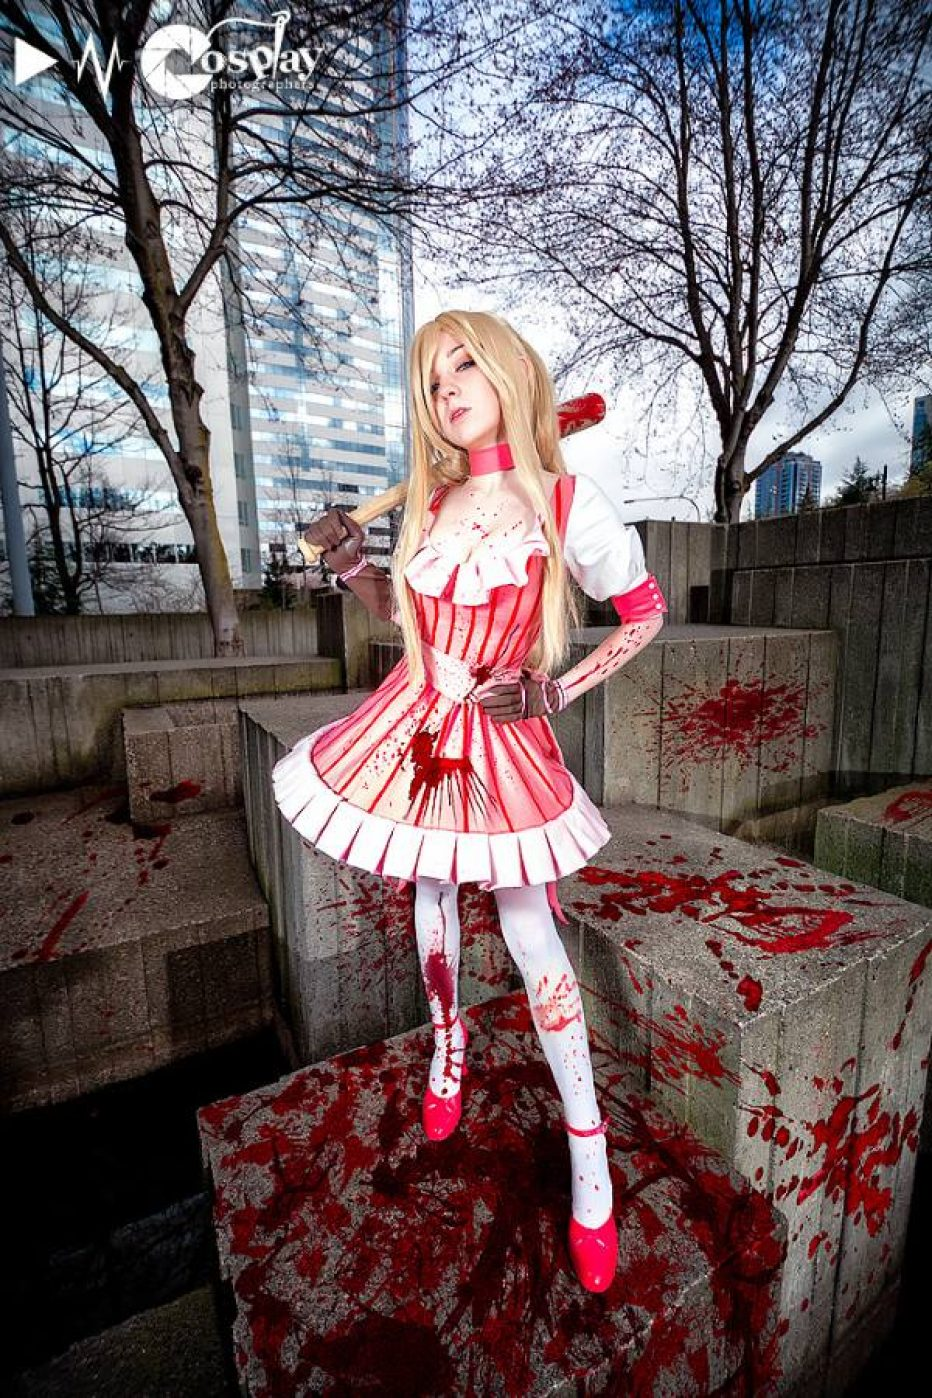 No-More-Heroes-Bad-Girl-Cosplay-Gamers-Heroes-5.jpg